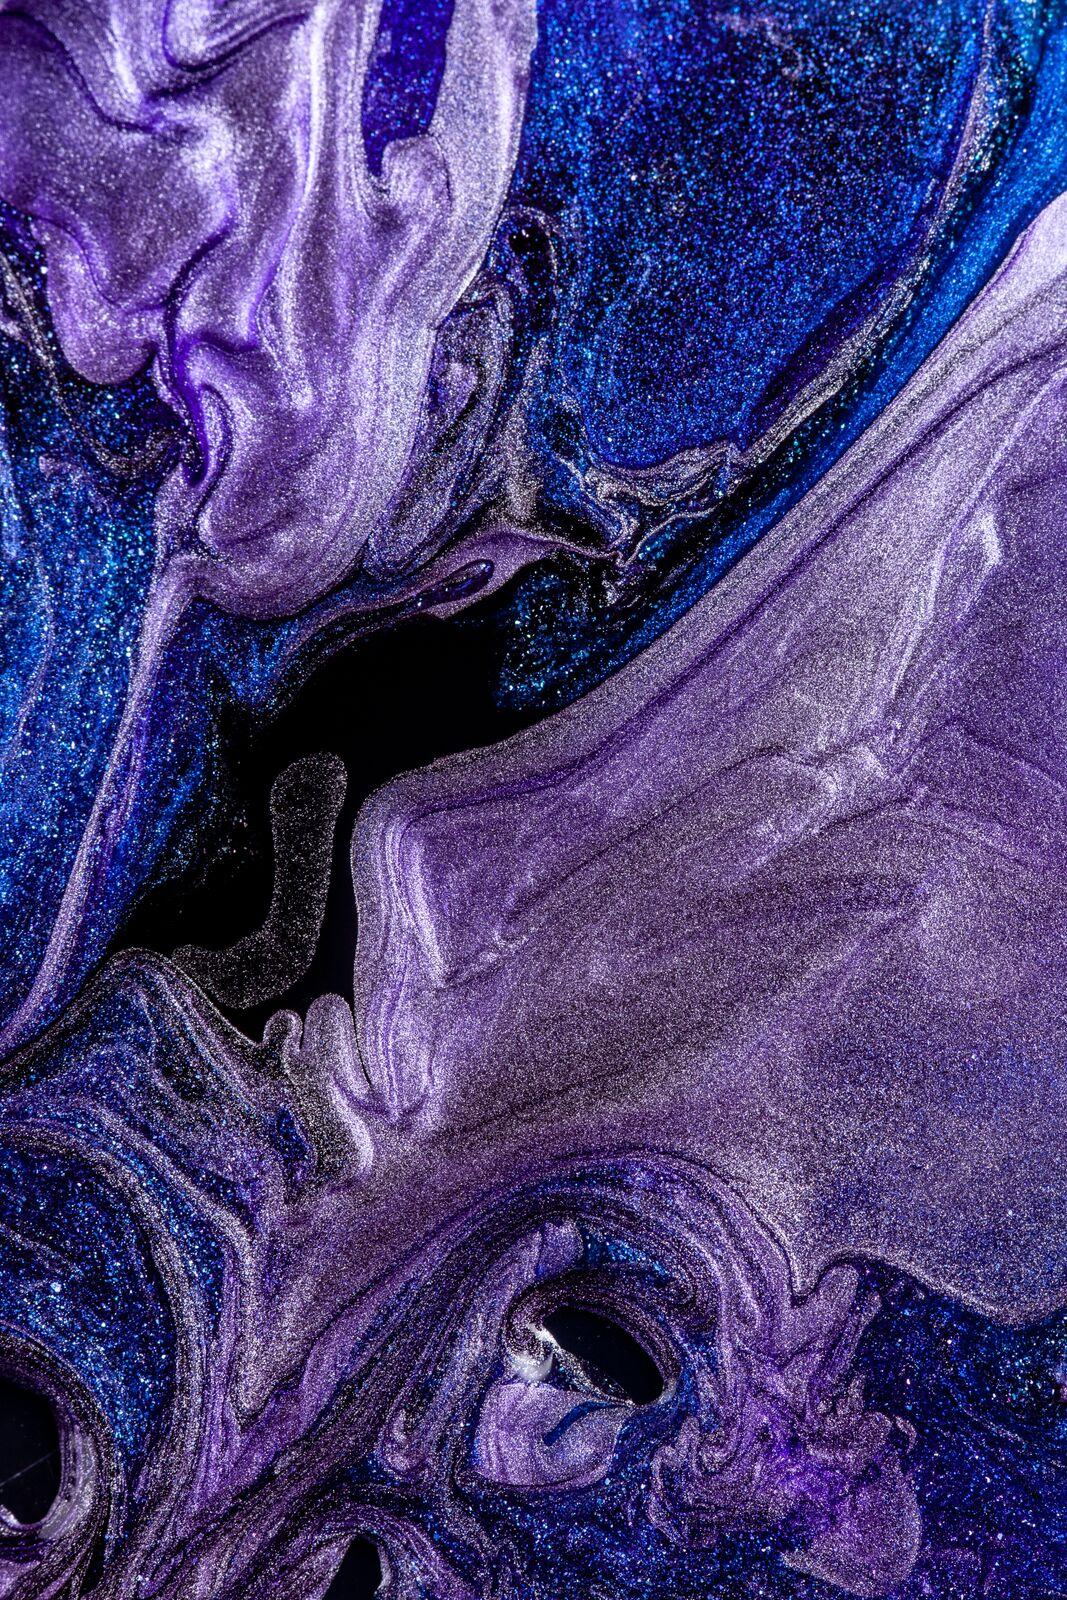 Condensed Shades of Blue and Purple